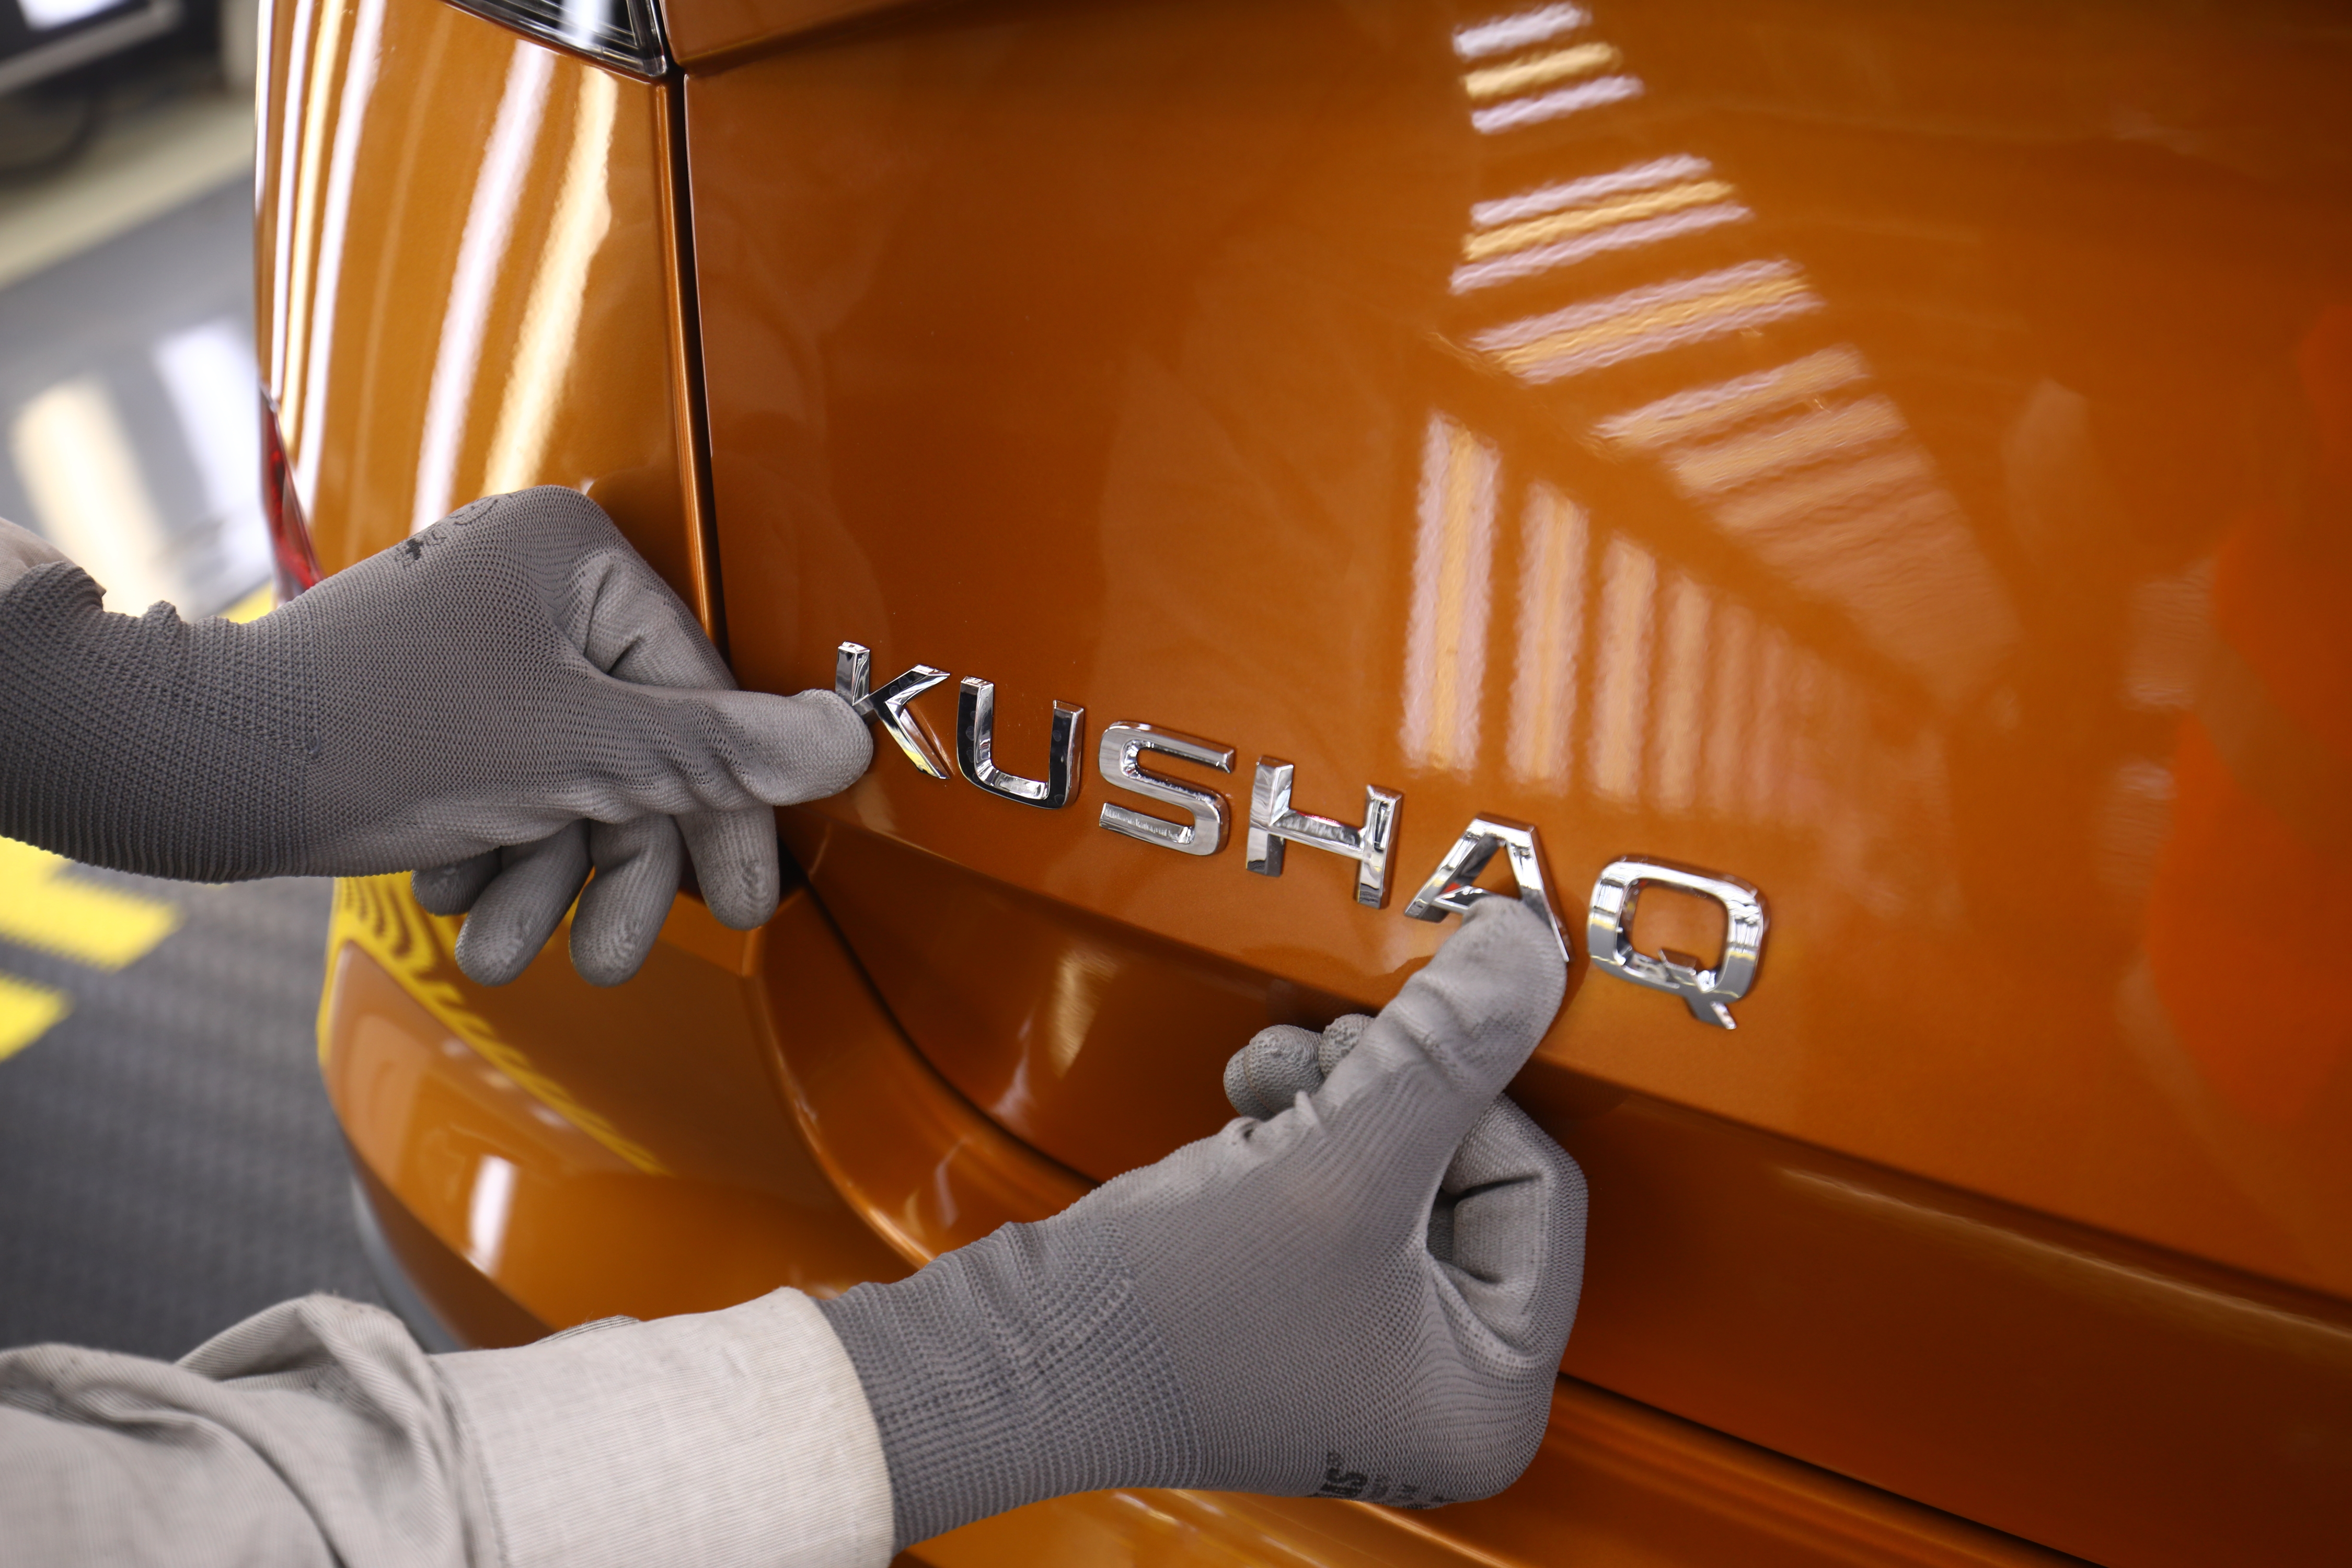 SKODA AUTO Volkswagen India Private Limited launches series production of the new SUV model KUSHAQ - Image 1